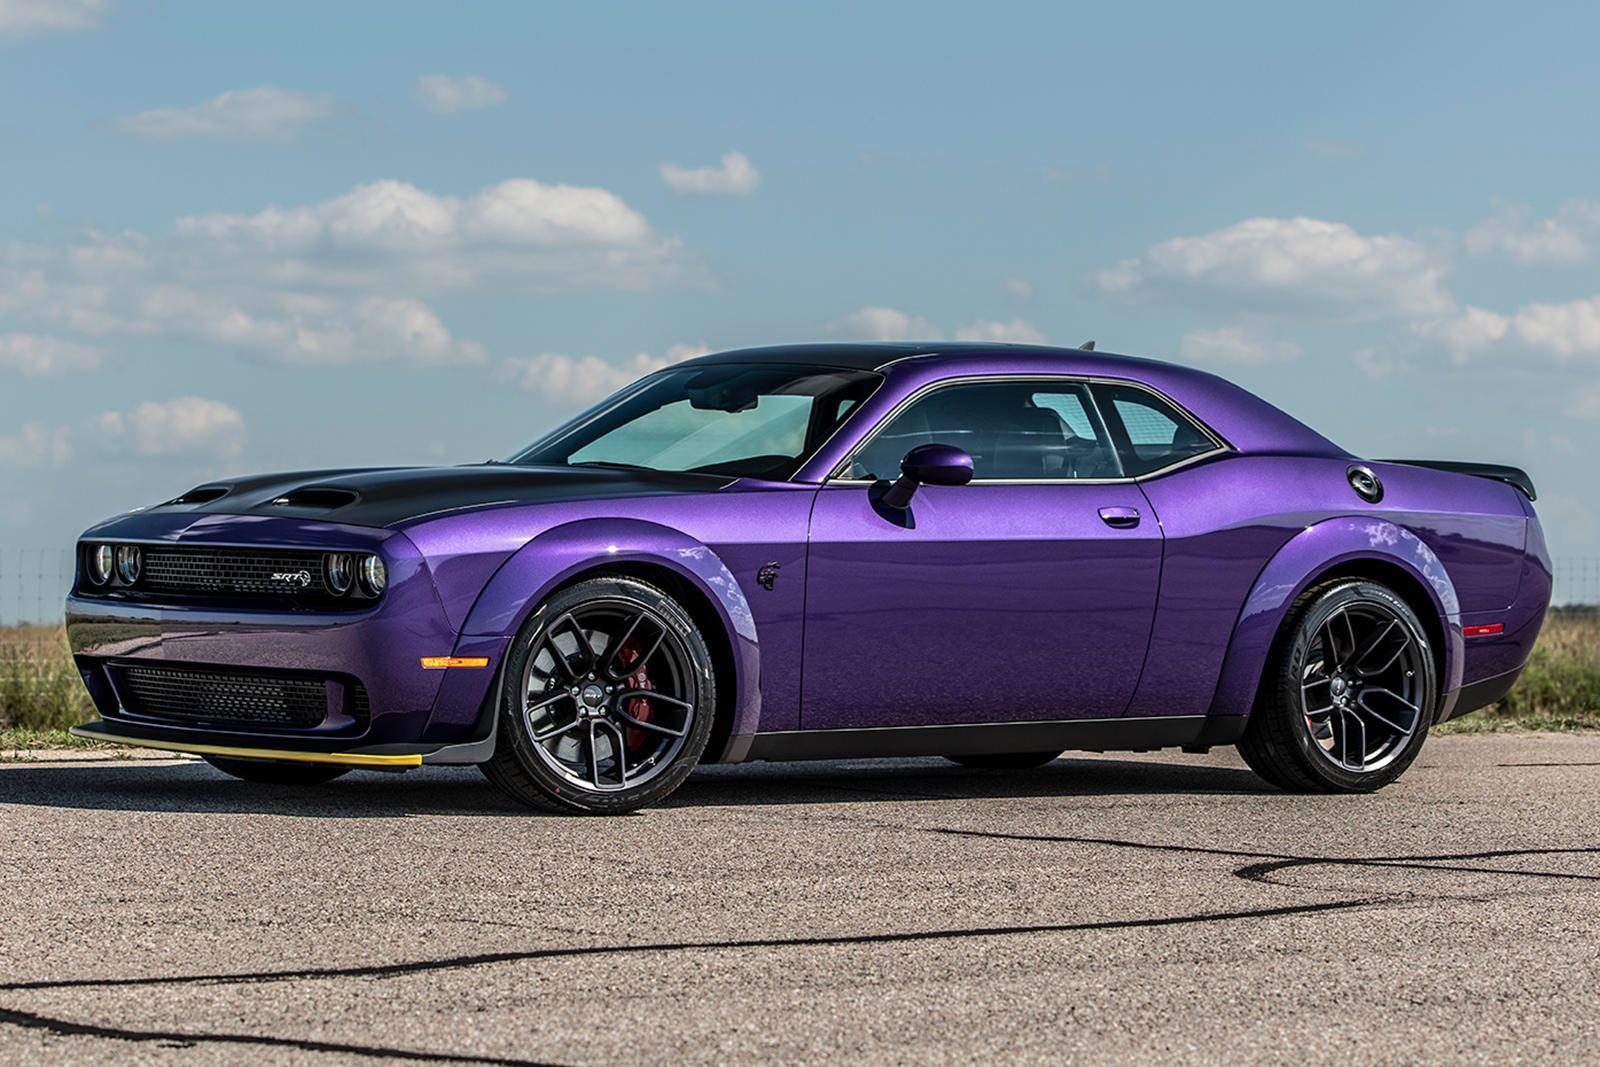 Hennessey Unleashes 1 000 Hp Dodge Challenger Redeye 797 Horsepower Not Enough For You H In 2020 Dodge Challenger Dodge Challenger Srt Hellcat Challenger Srt Hellcat